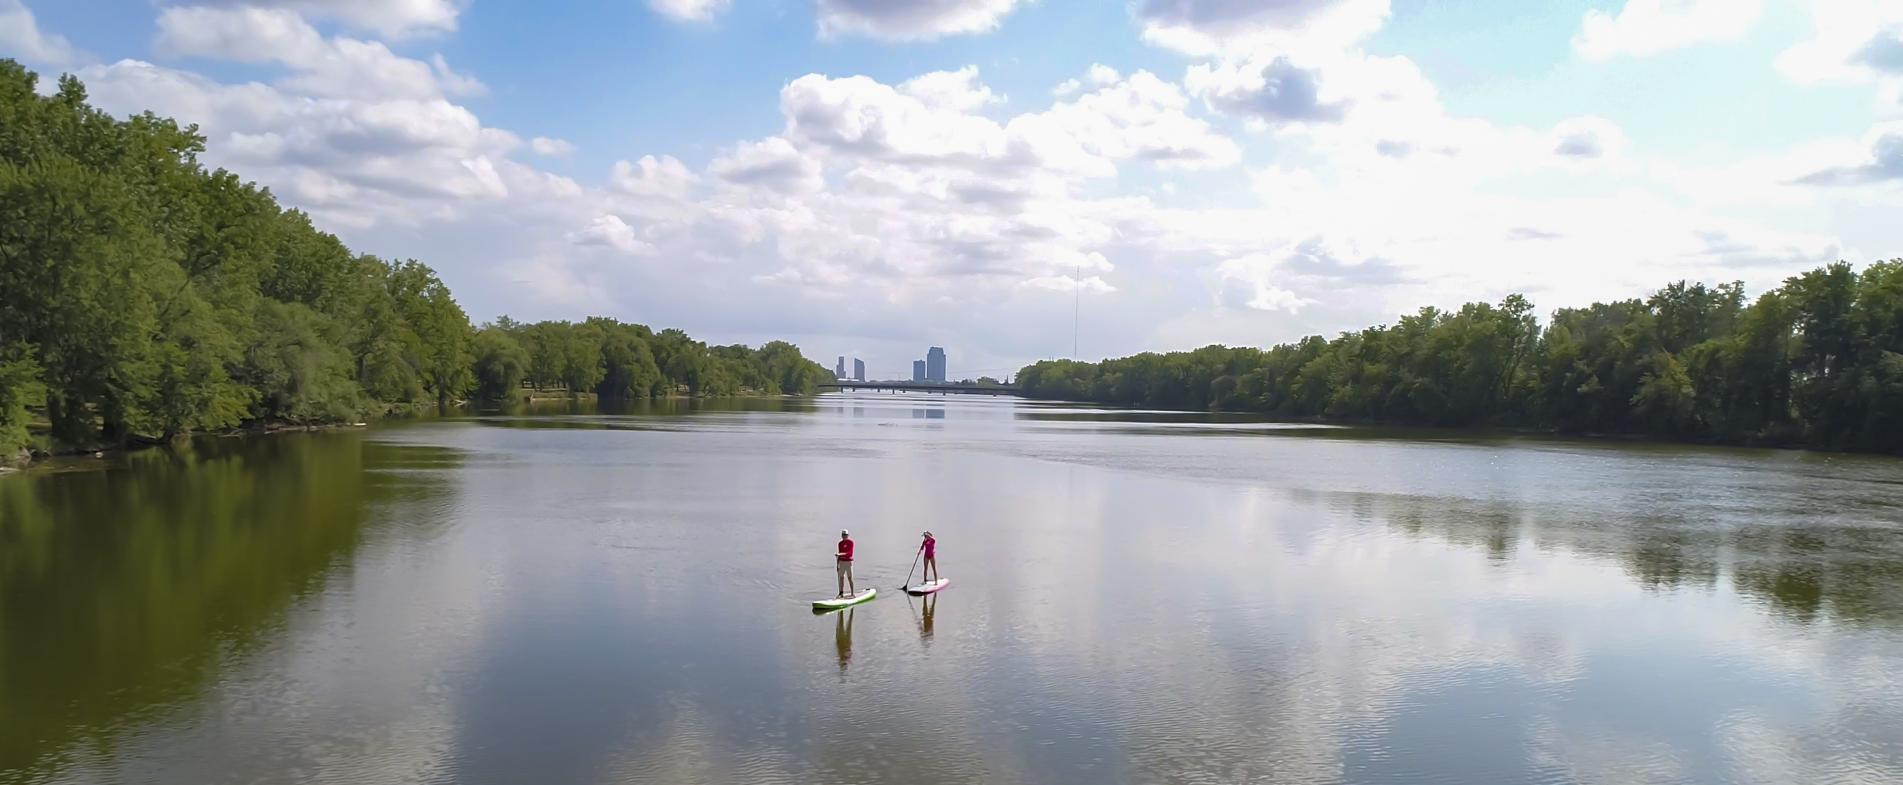 The Grand Rapids area offers many lakes and rivers that are great for SUPing.